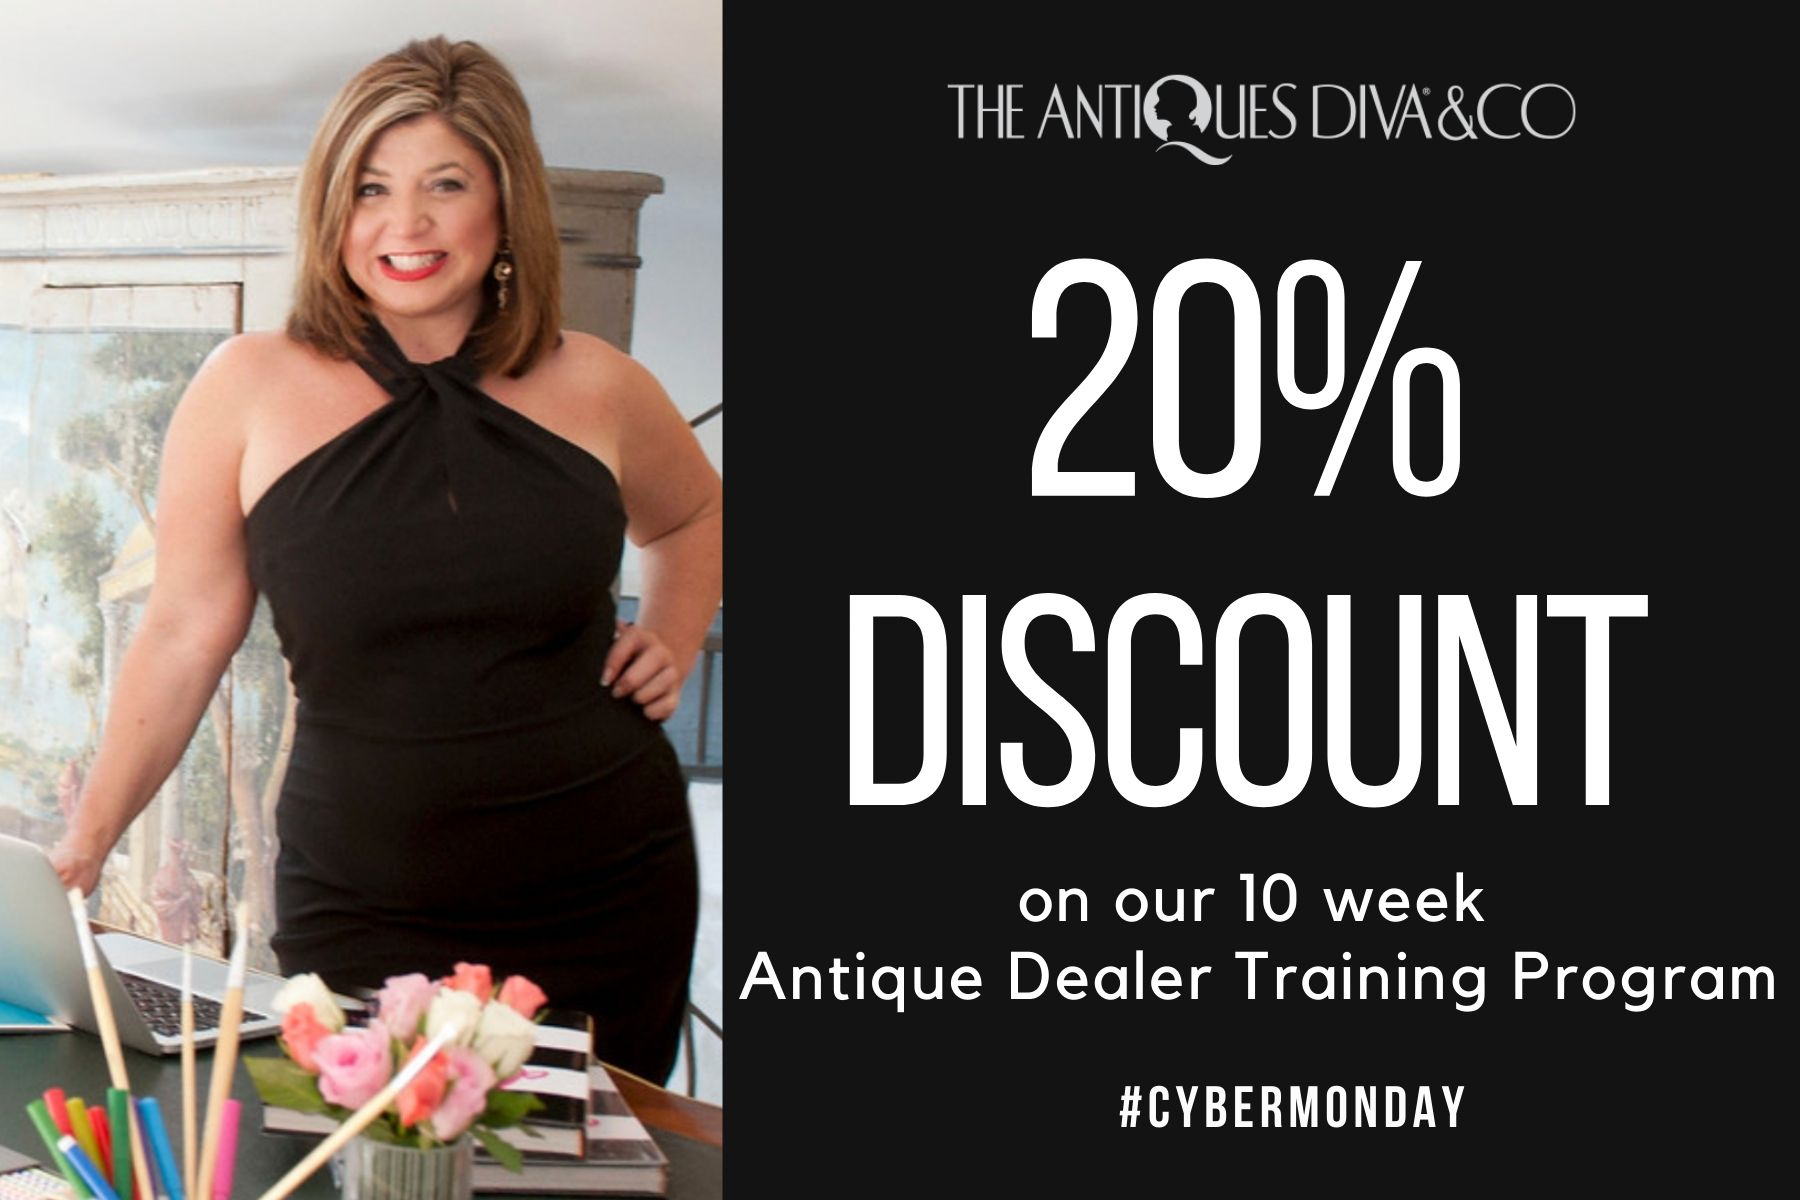 Antiques Diva Cyber Monday sale